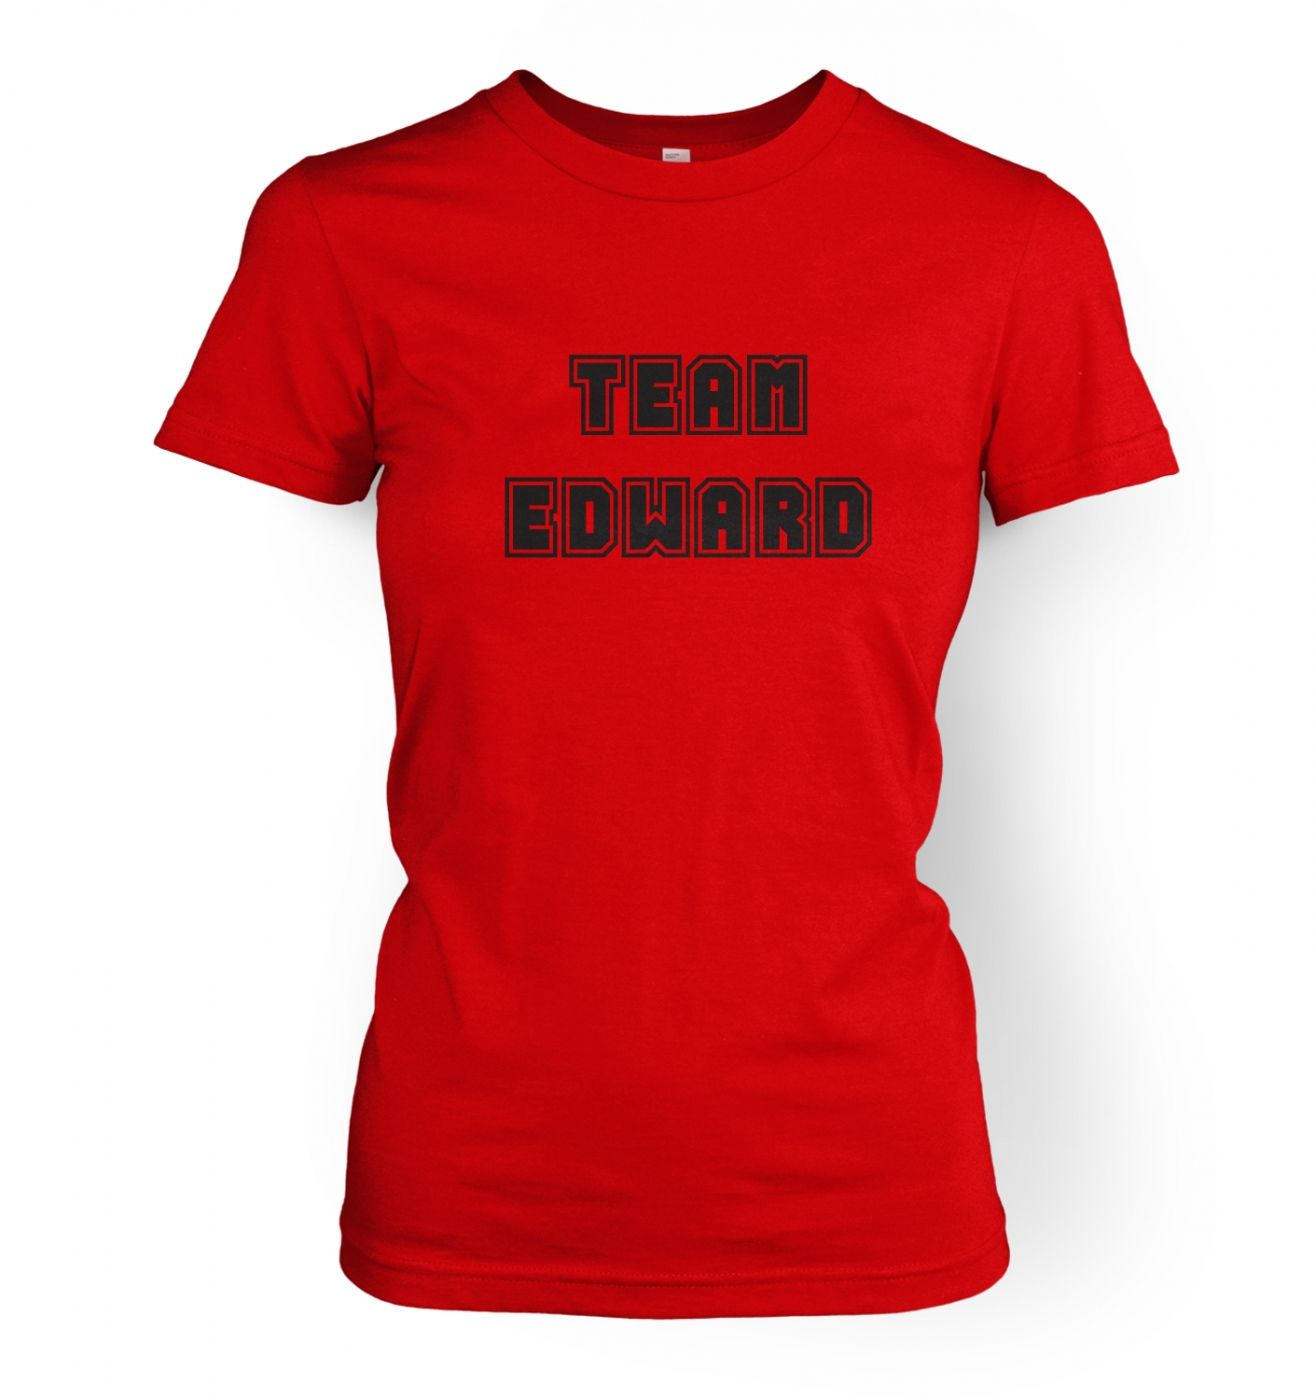 Varsity Style Team Edward  womens t-shirt